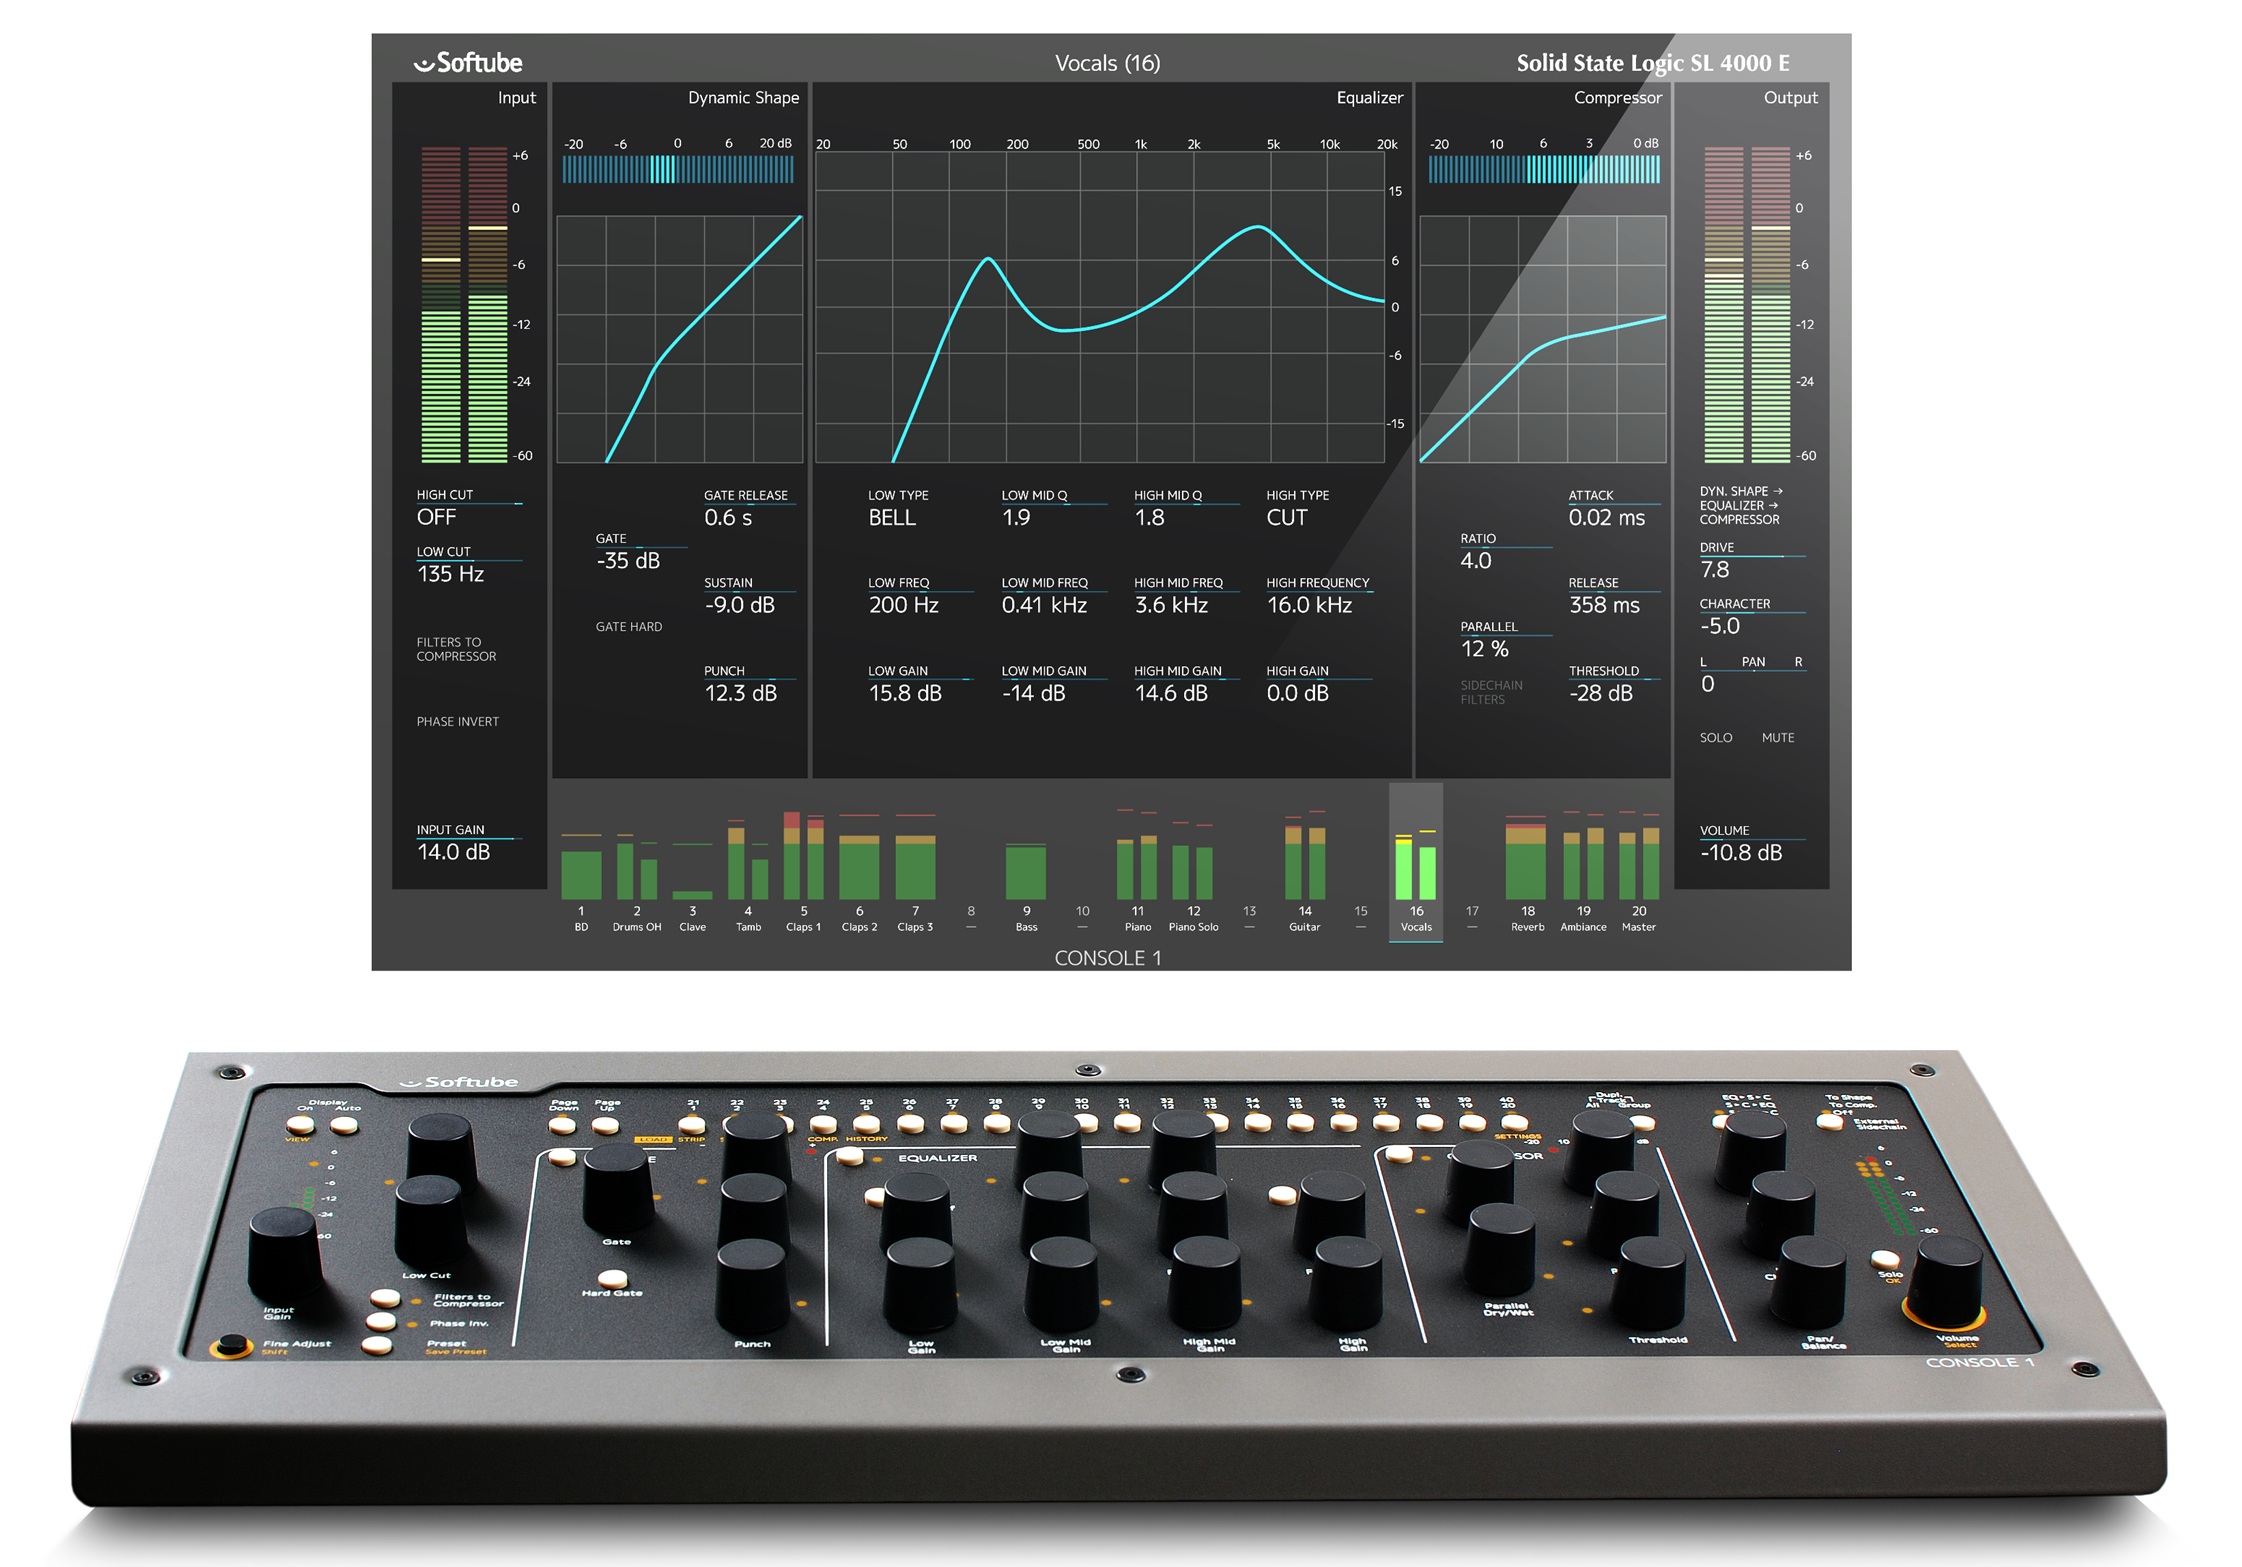 softube Console1 channel strip plug-ins for pro tools.png